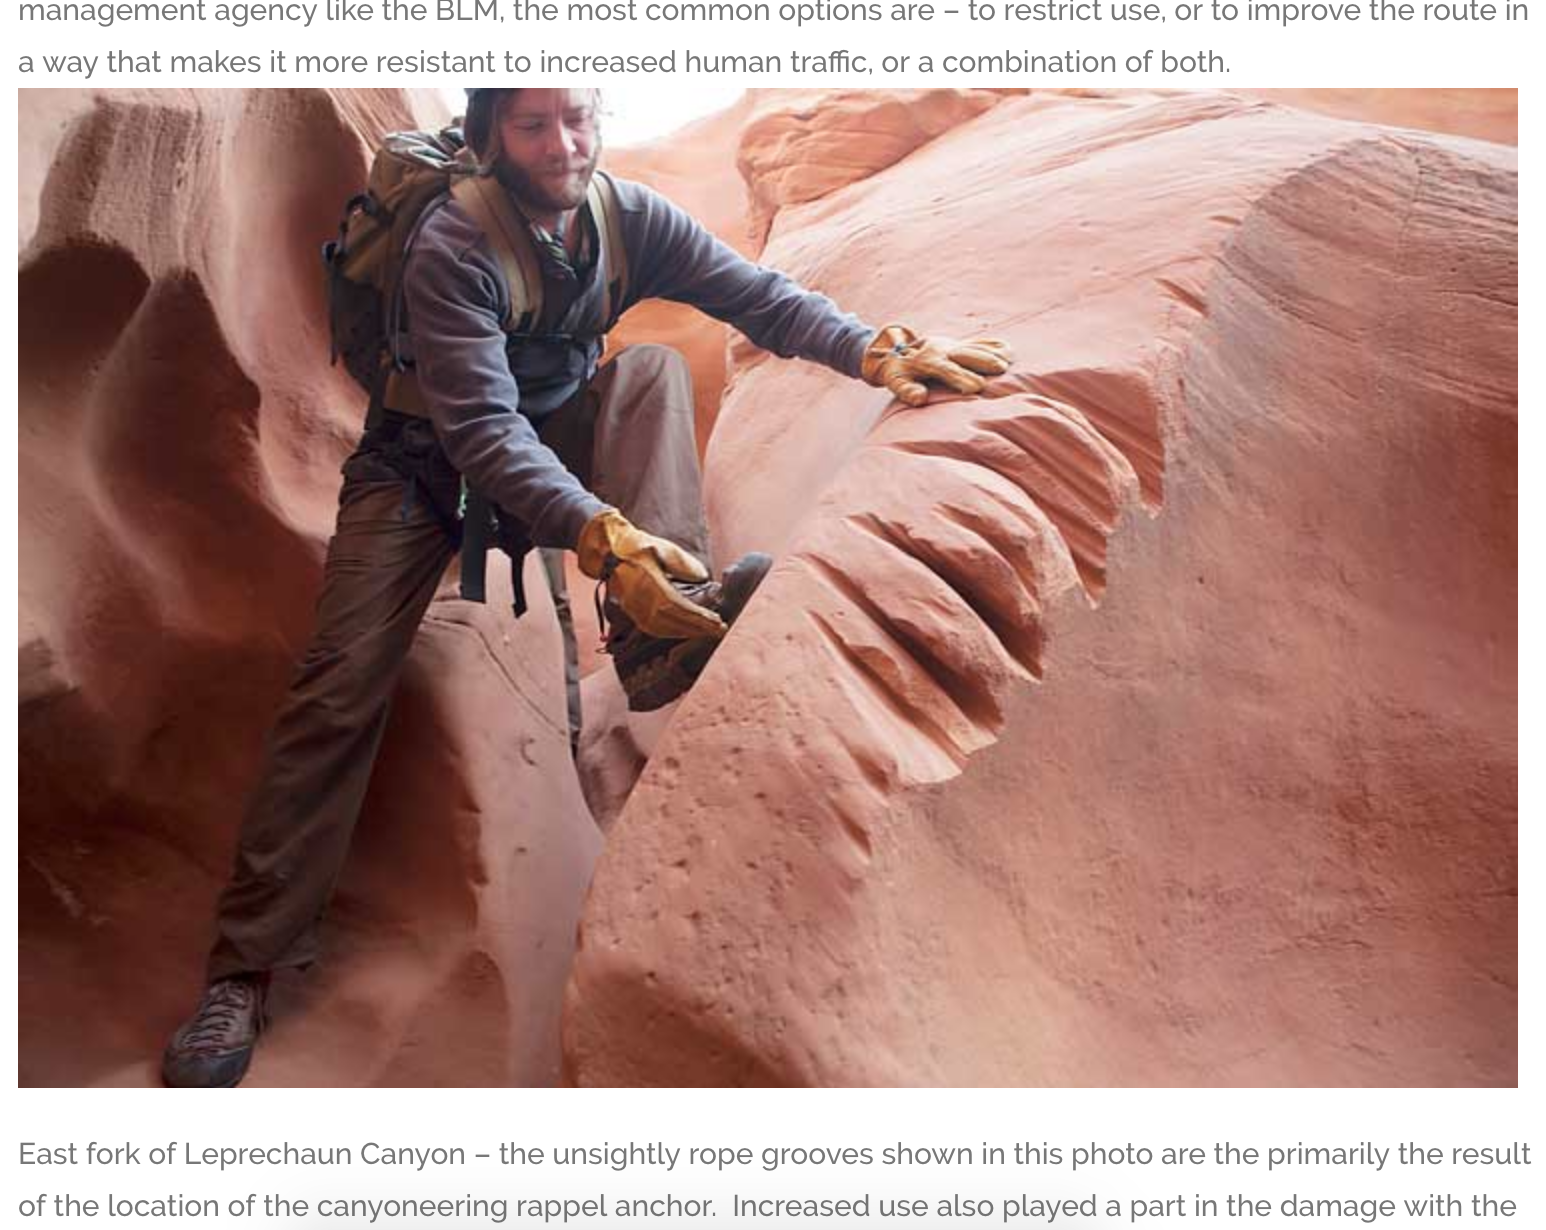 Human-caused sandstone damage (rope grooves) in Leprechaun Canyon. Photo Credit  Red Desert Adventures